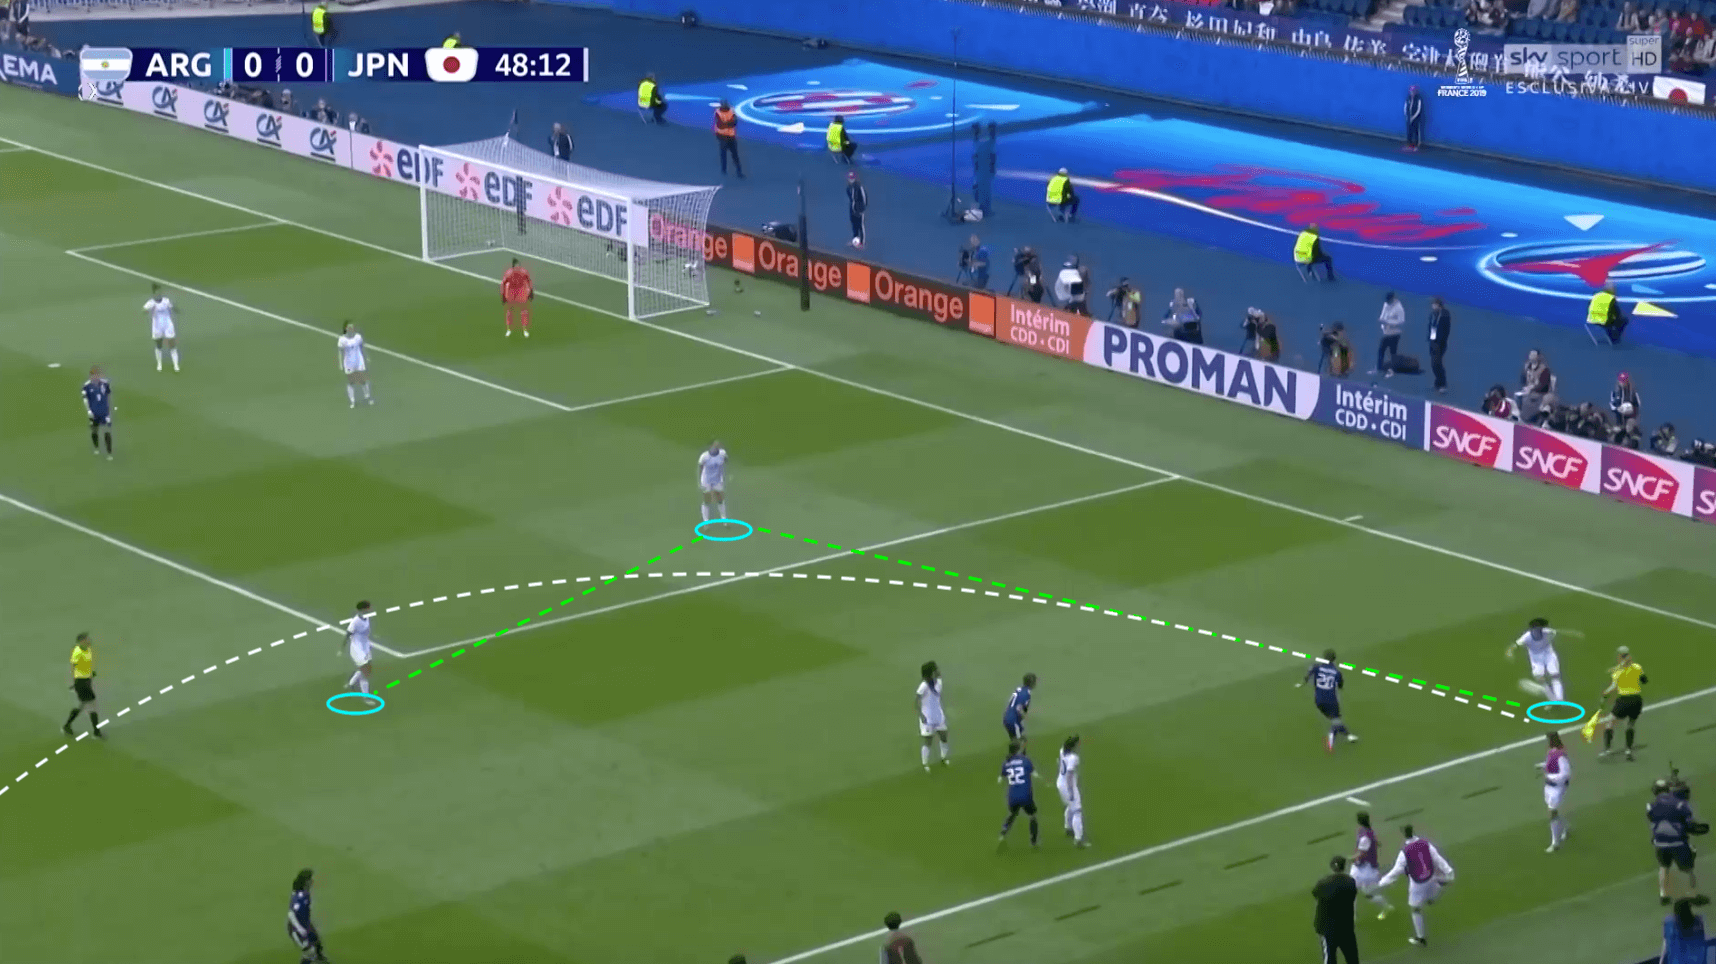 FIFA Women's World Cup 2019 Tactical Analysis: Argentina vs Japan